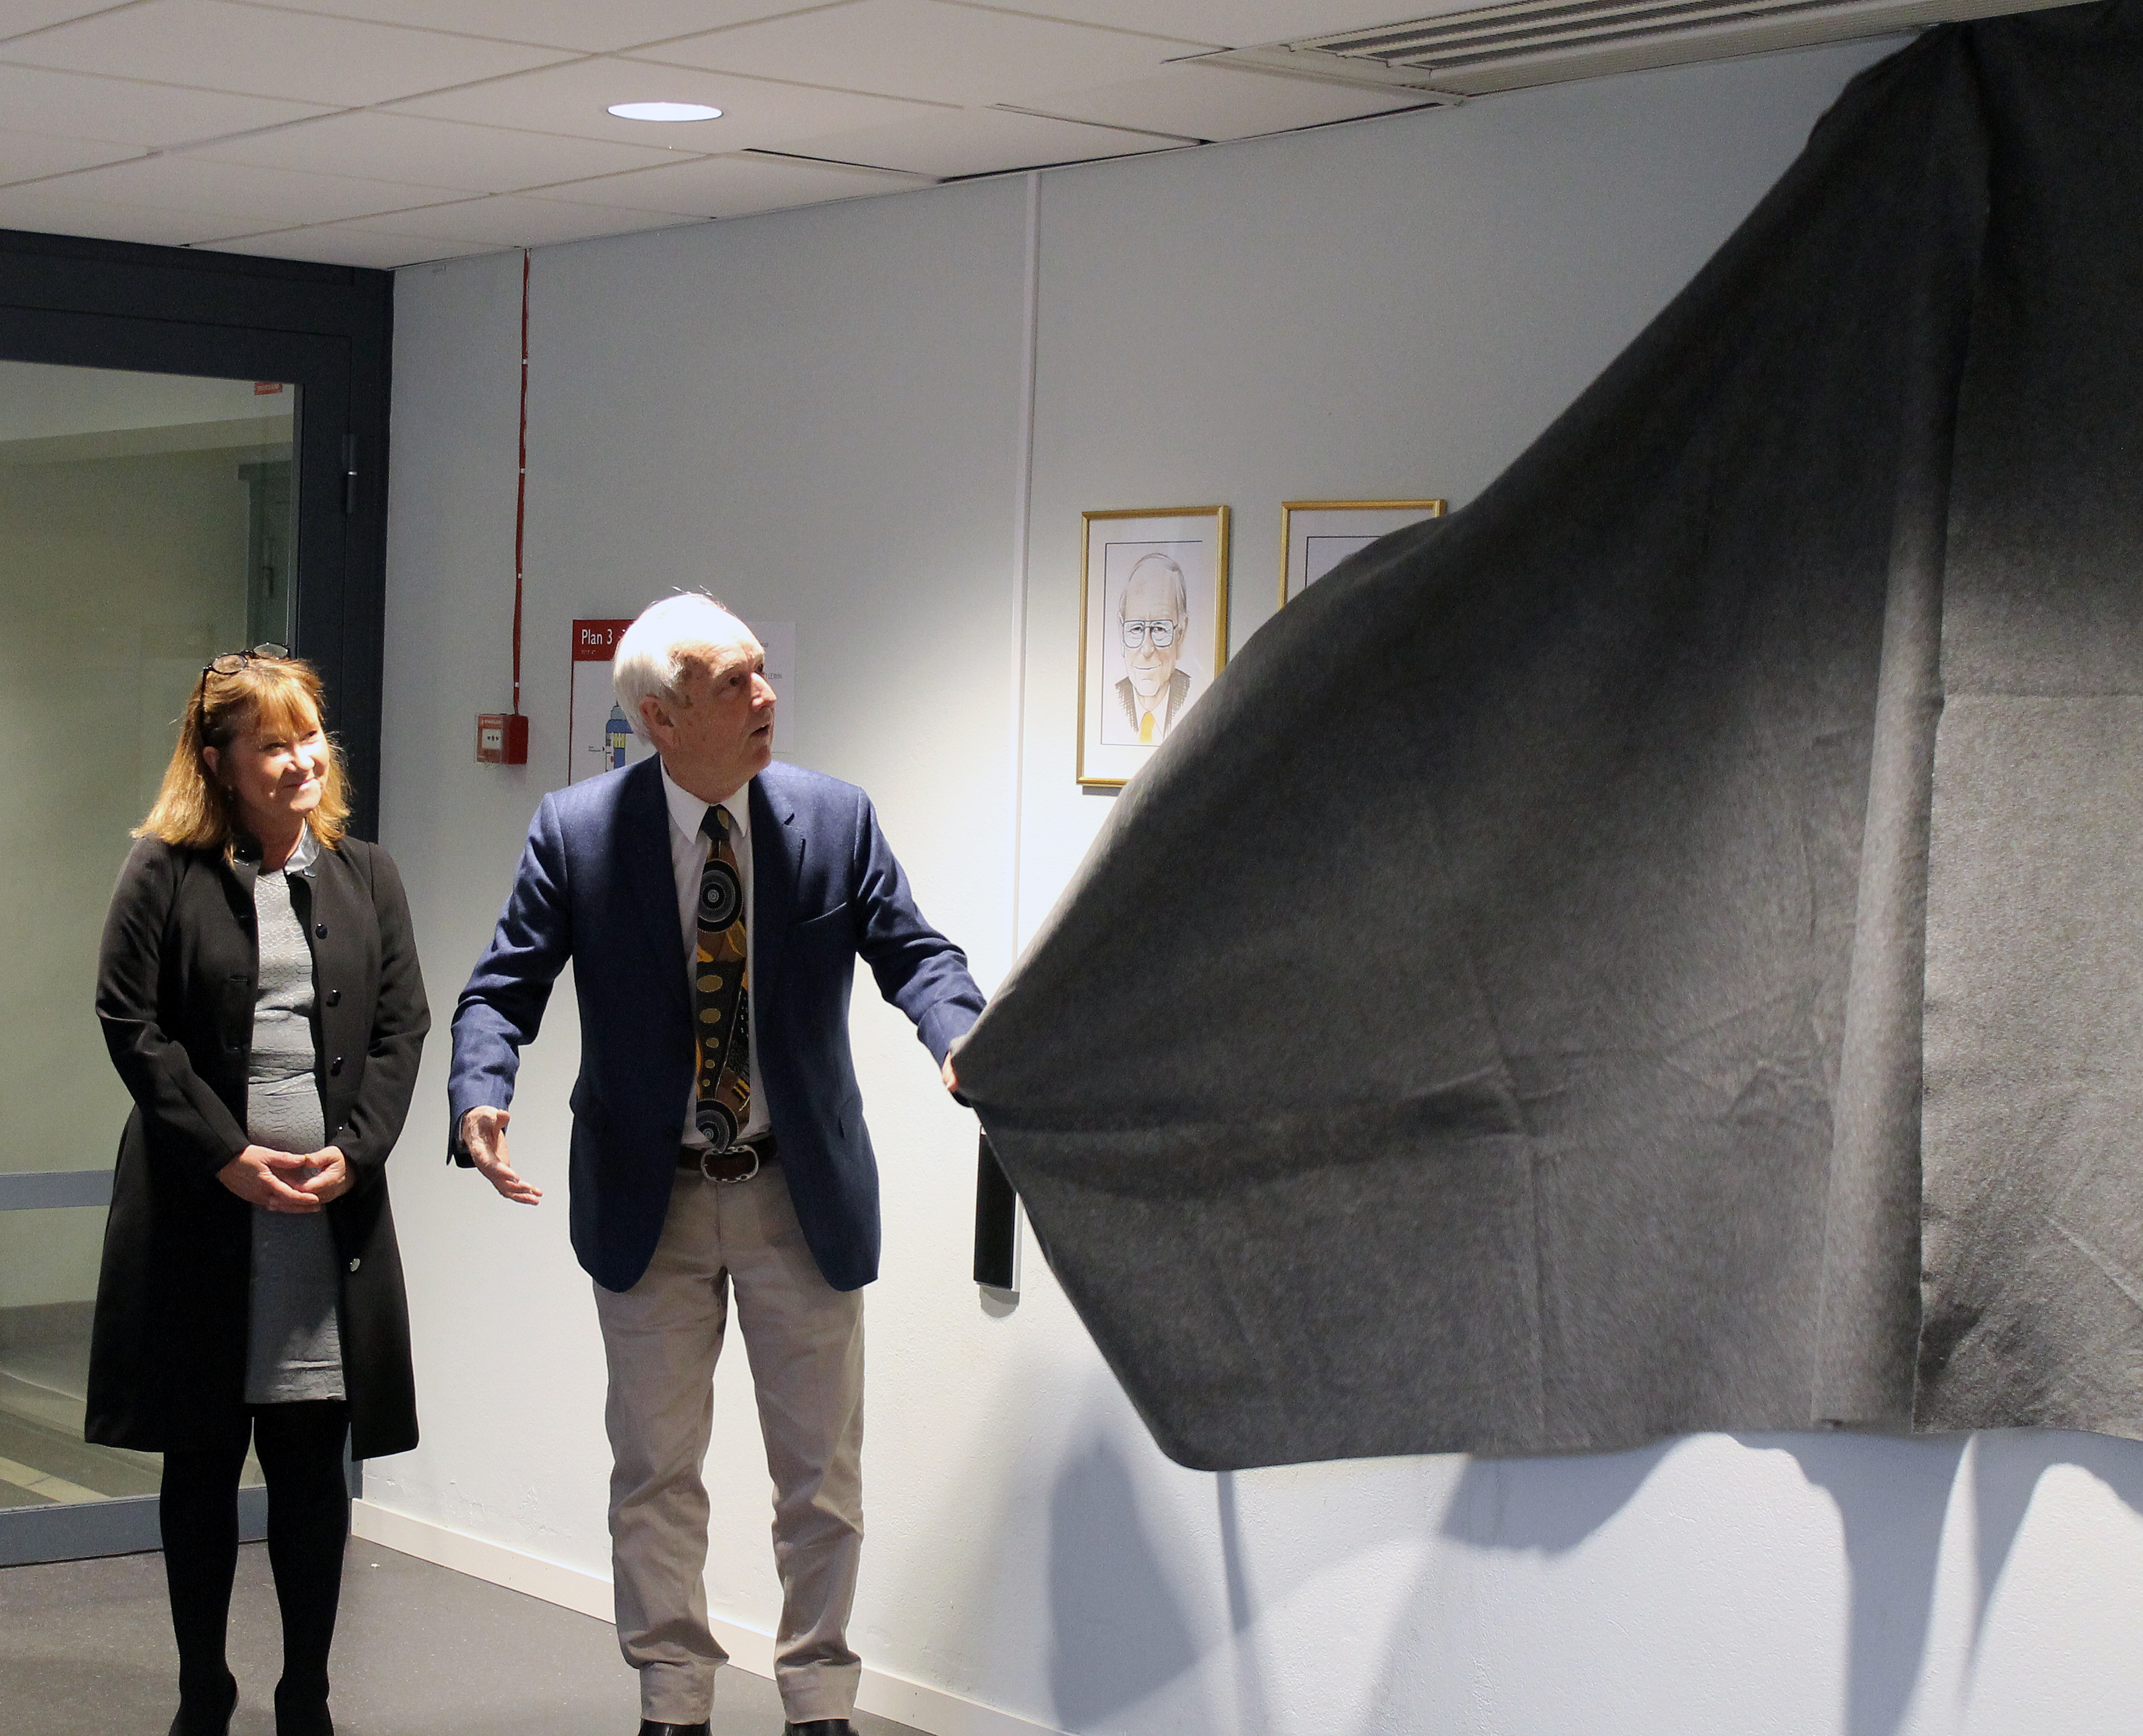 The ceremonial unveiling of the portraits by Nils-Axel Mörner, patron of the Skytte Foundation.